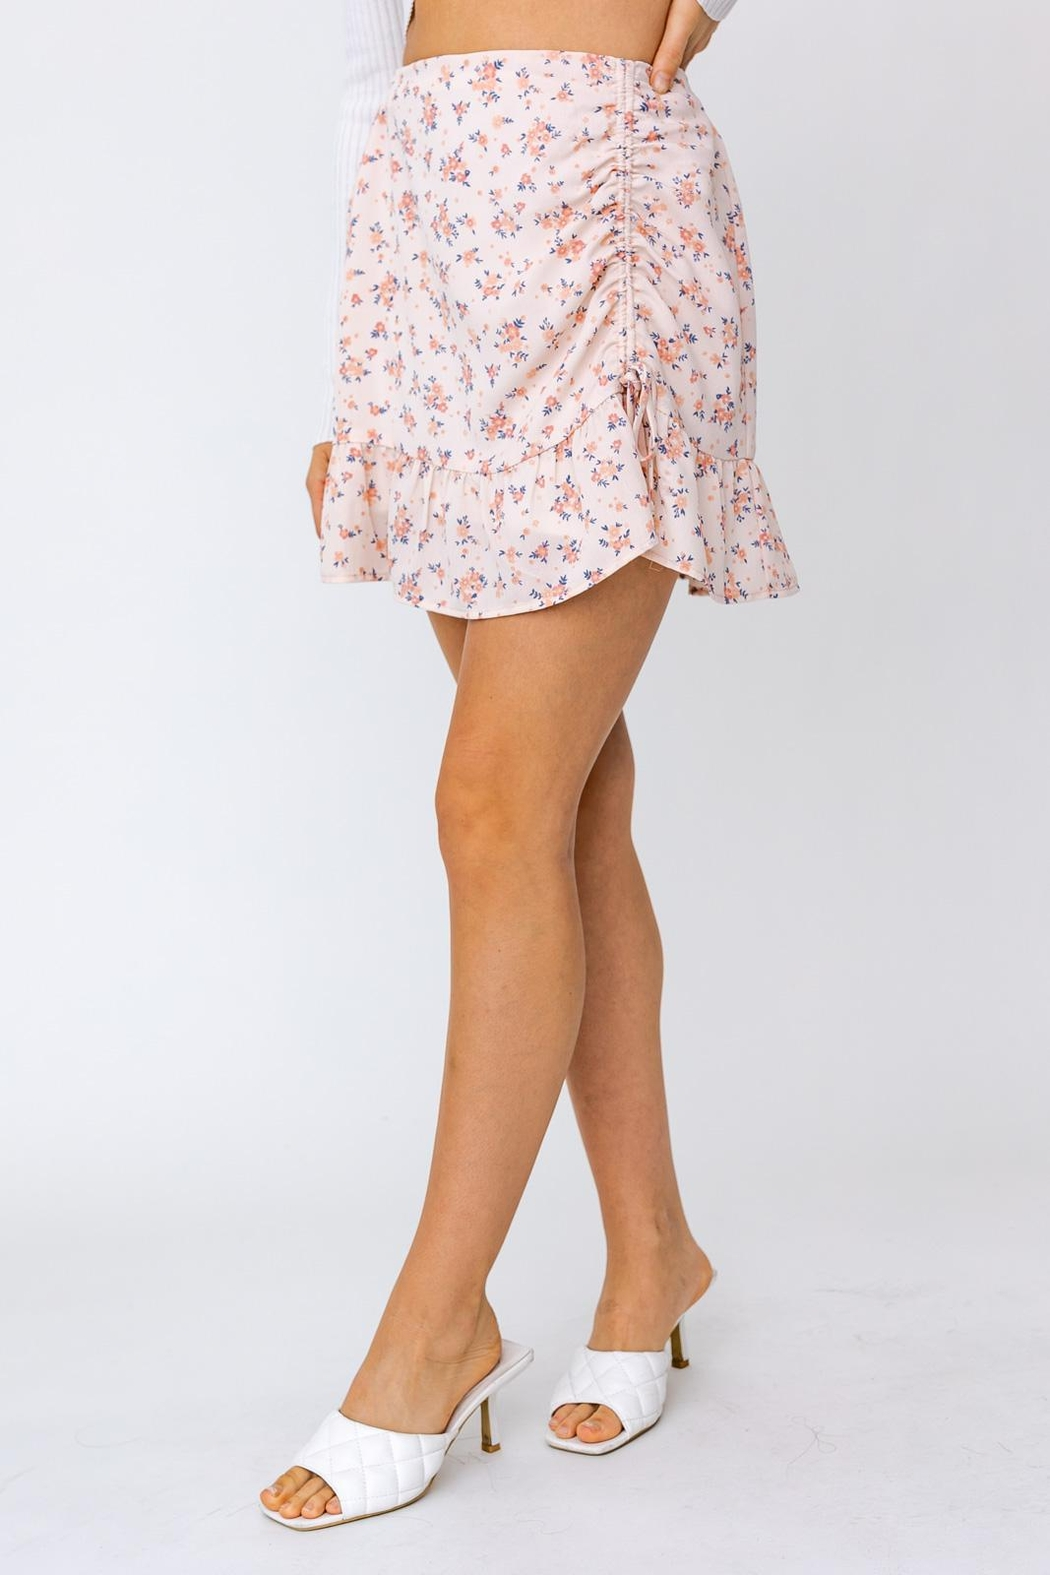 Le Lis Ruched Floral Mini Skirt - Back Cropped Image